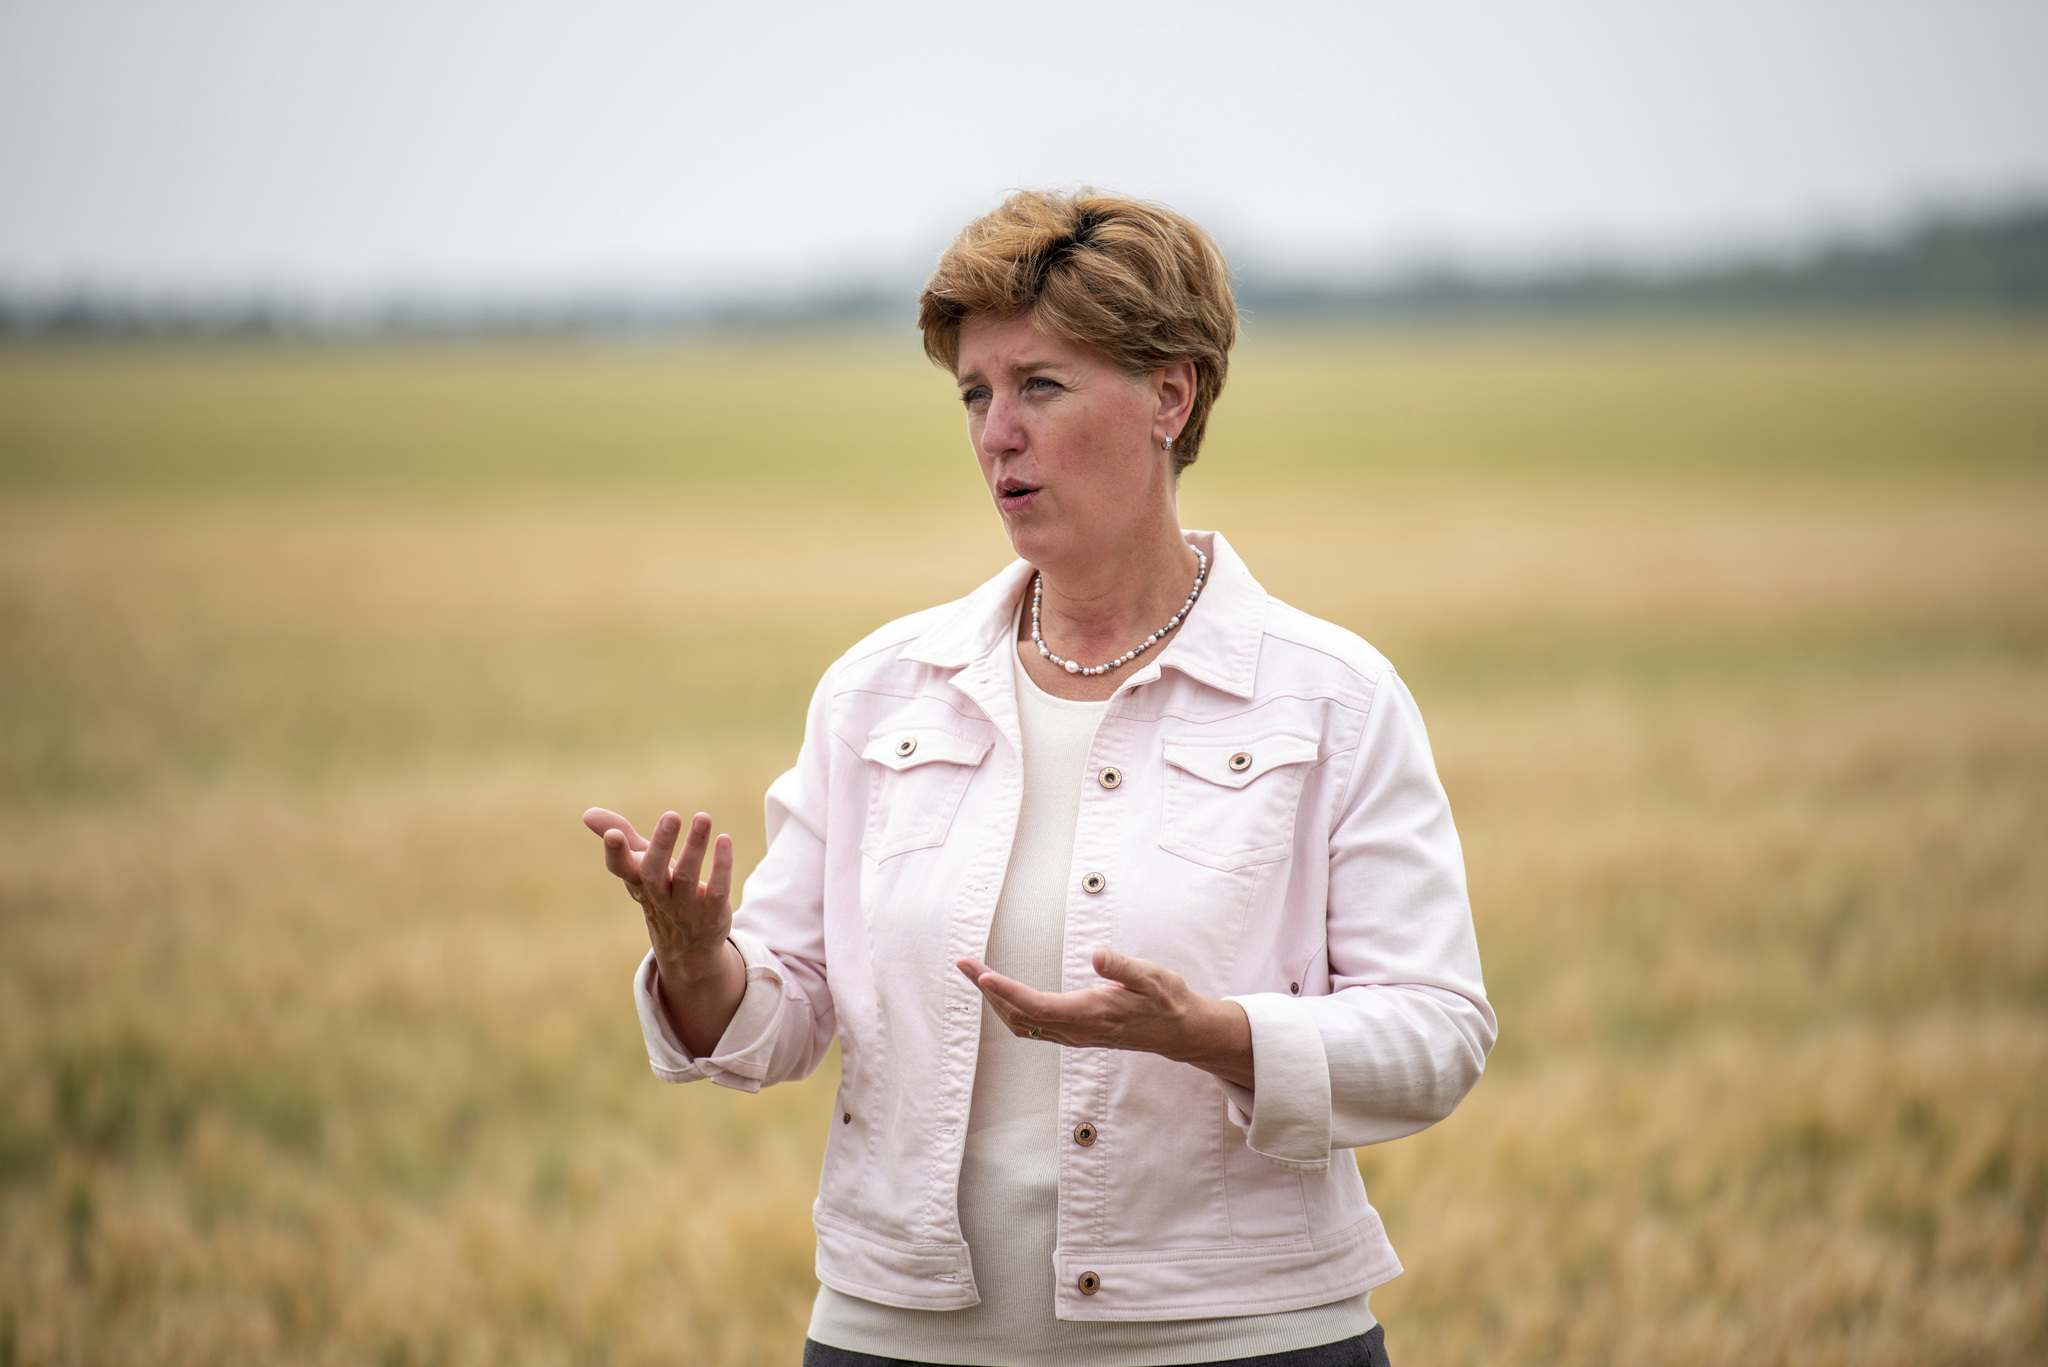 ALEX LUPUL / WINNIPEG FREE PRESS</p><p>Minister Marie-Claude Bibeau, federal Minister of Agriculture and Agri-Food.</p>